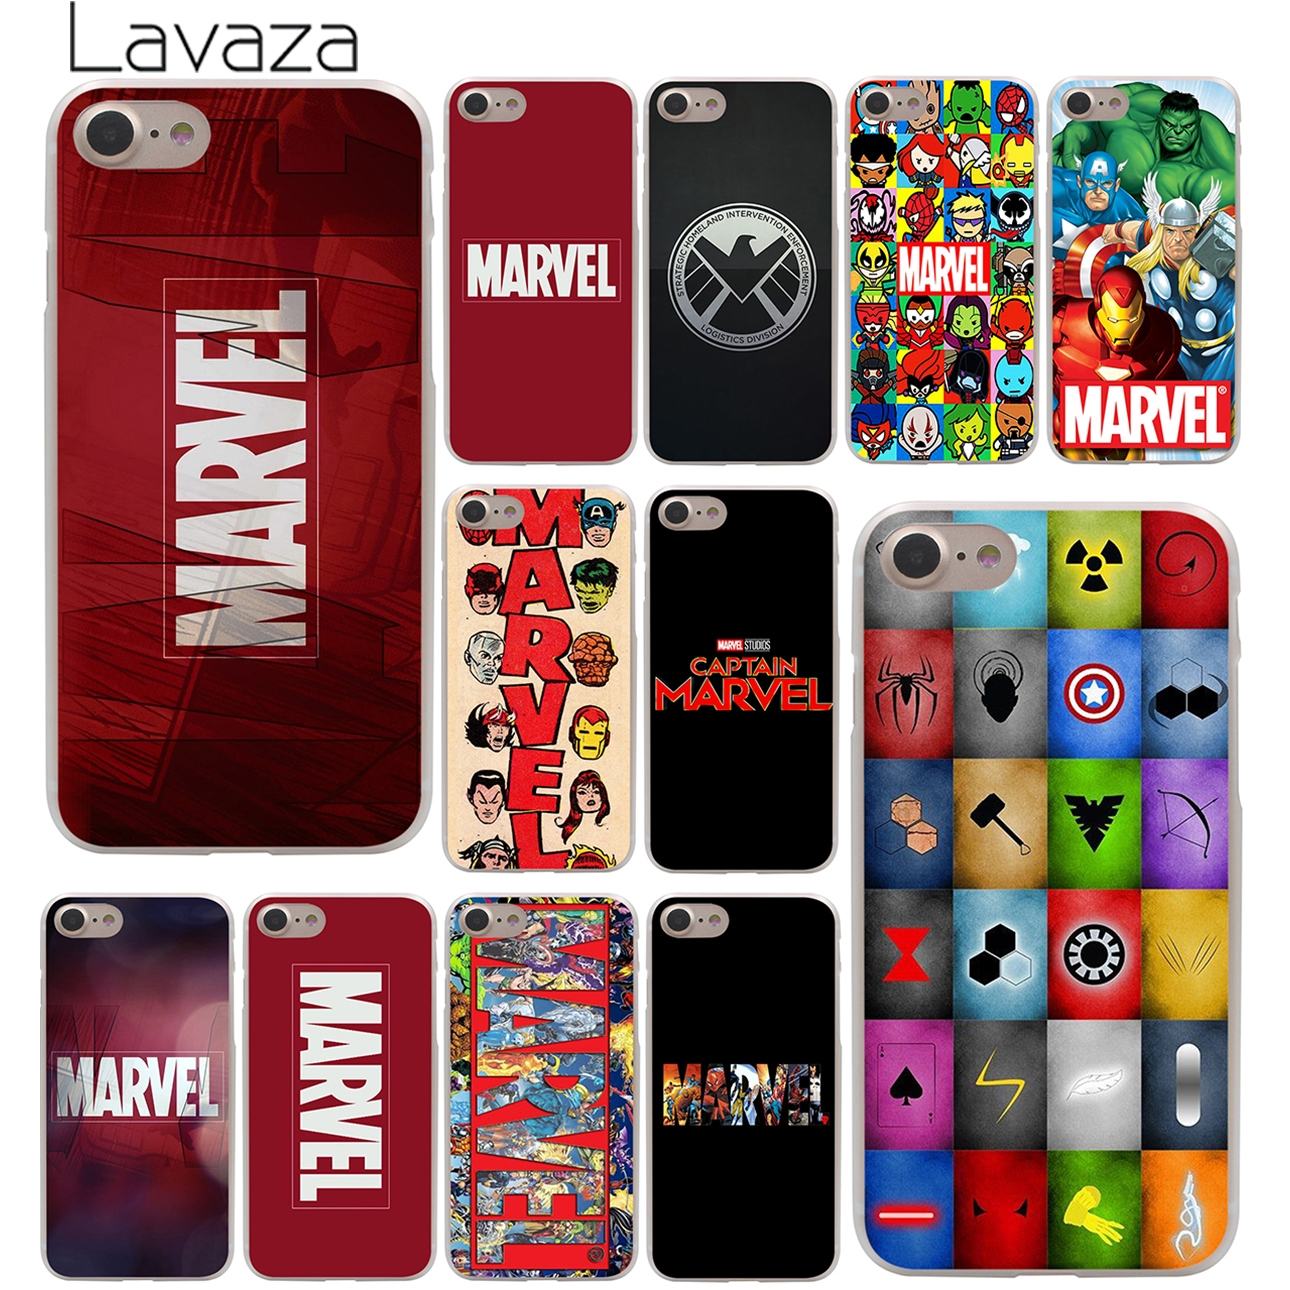 Luxury Marvel Comics logo Hard Case Transparent for iPhone 7 7 Plus 6 6s Plus 5 5S SE 5C 4 4S